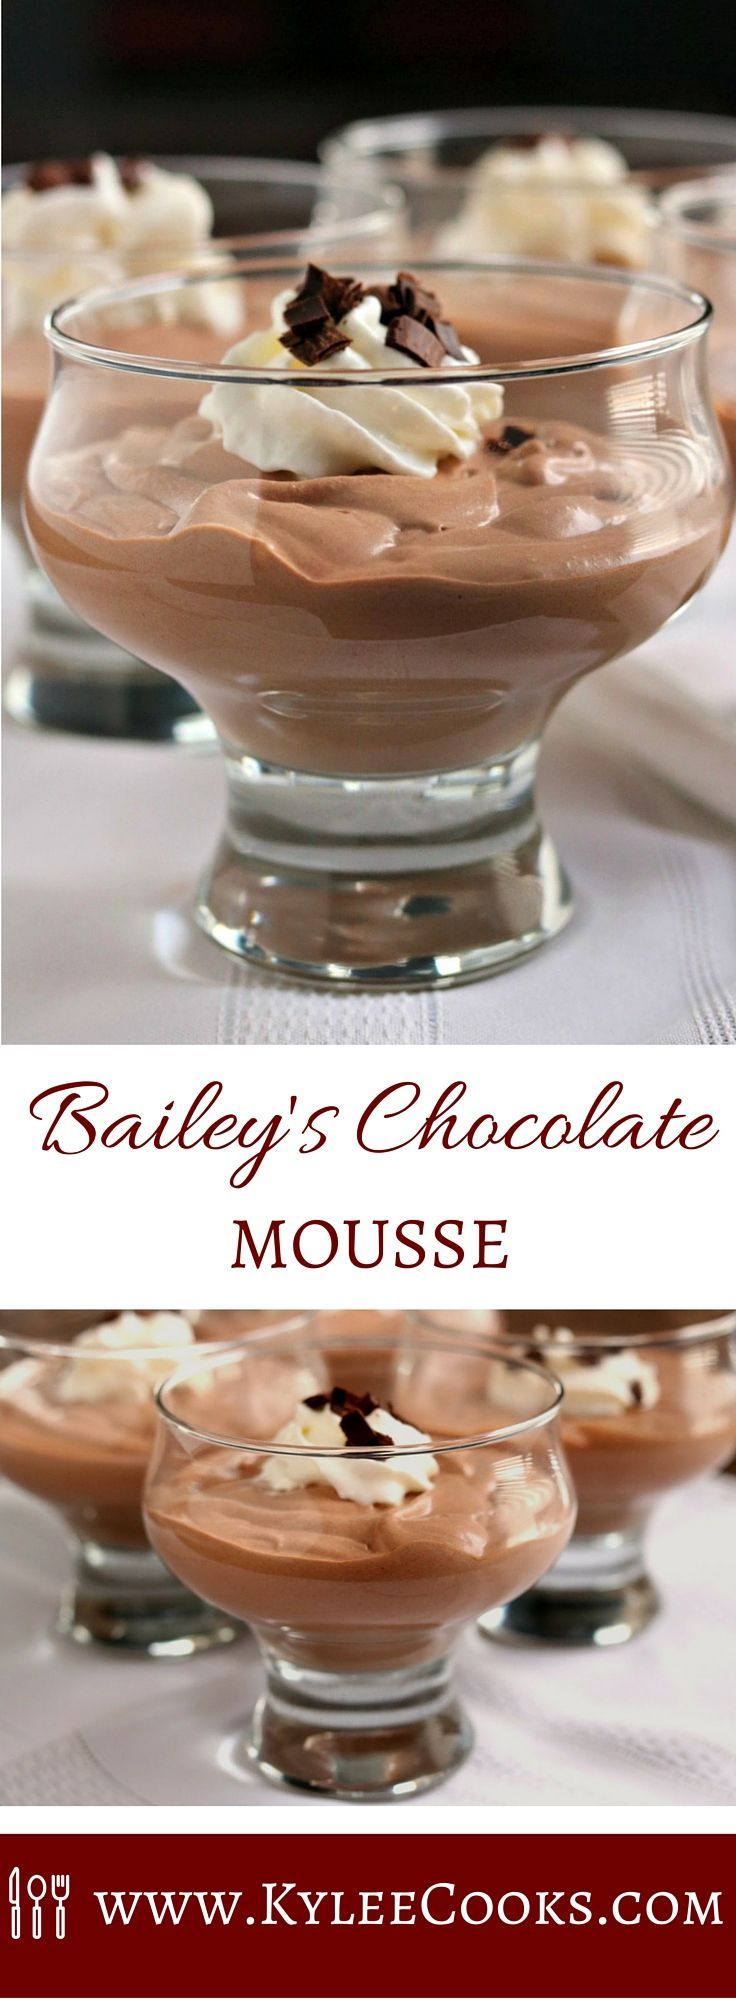 Bailey's Chocolate Mousse Karlynn | The Kitchen Magpie